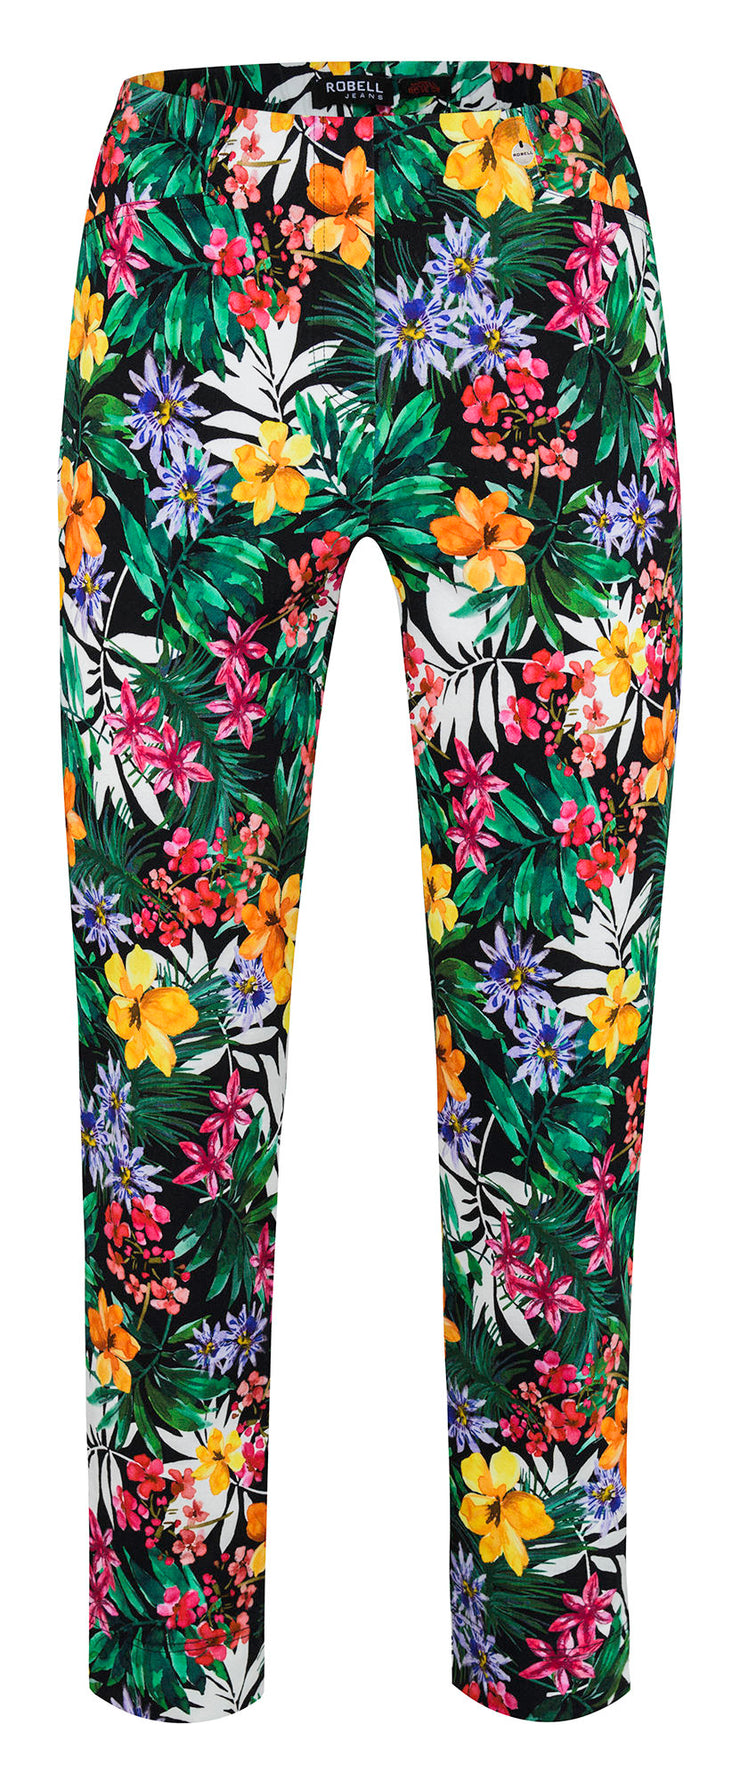 ROBELL | TROPICAL PRINT BELLA 09 TROUSERS